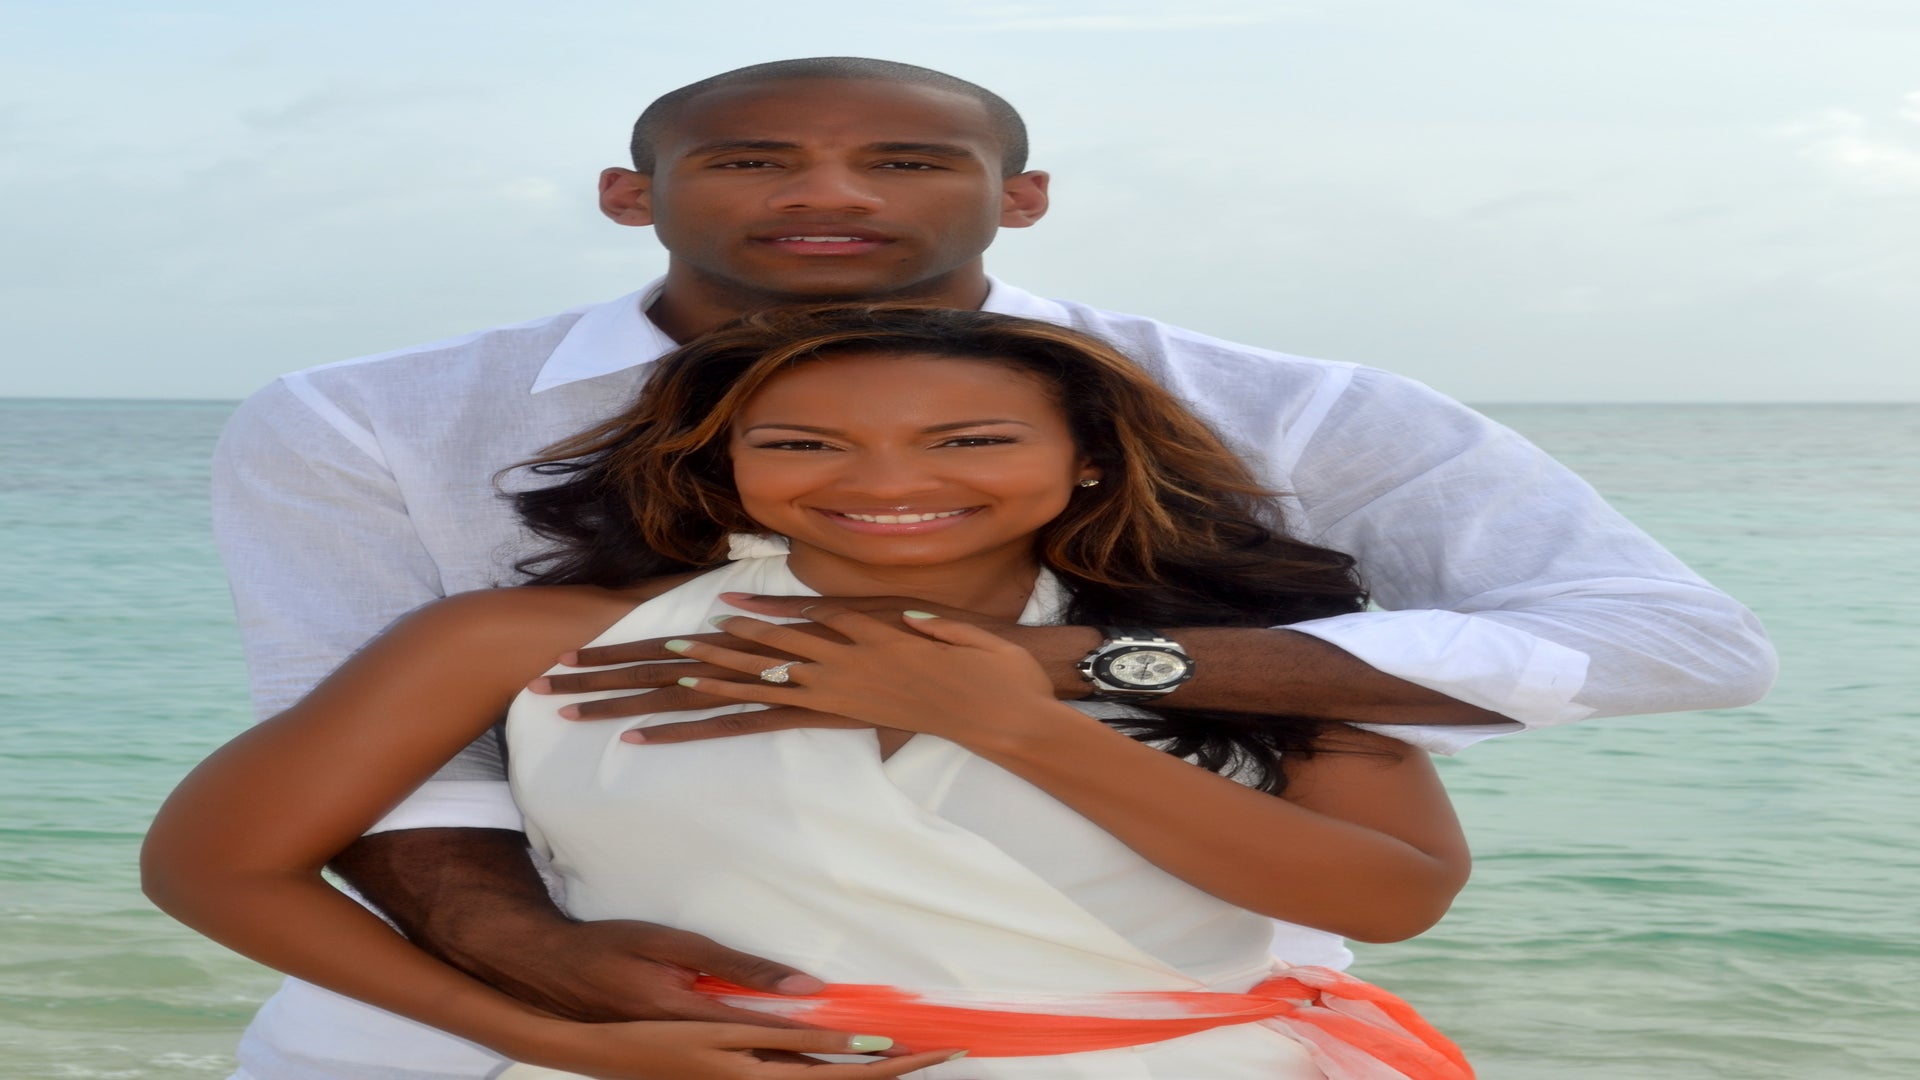 NBA Star Dahntay Jones Releases Official Engagement Photo